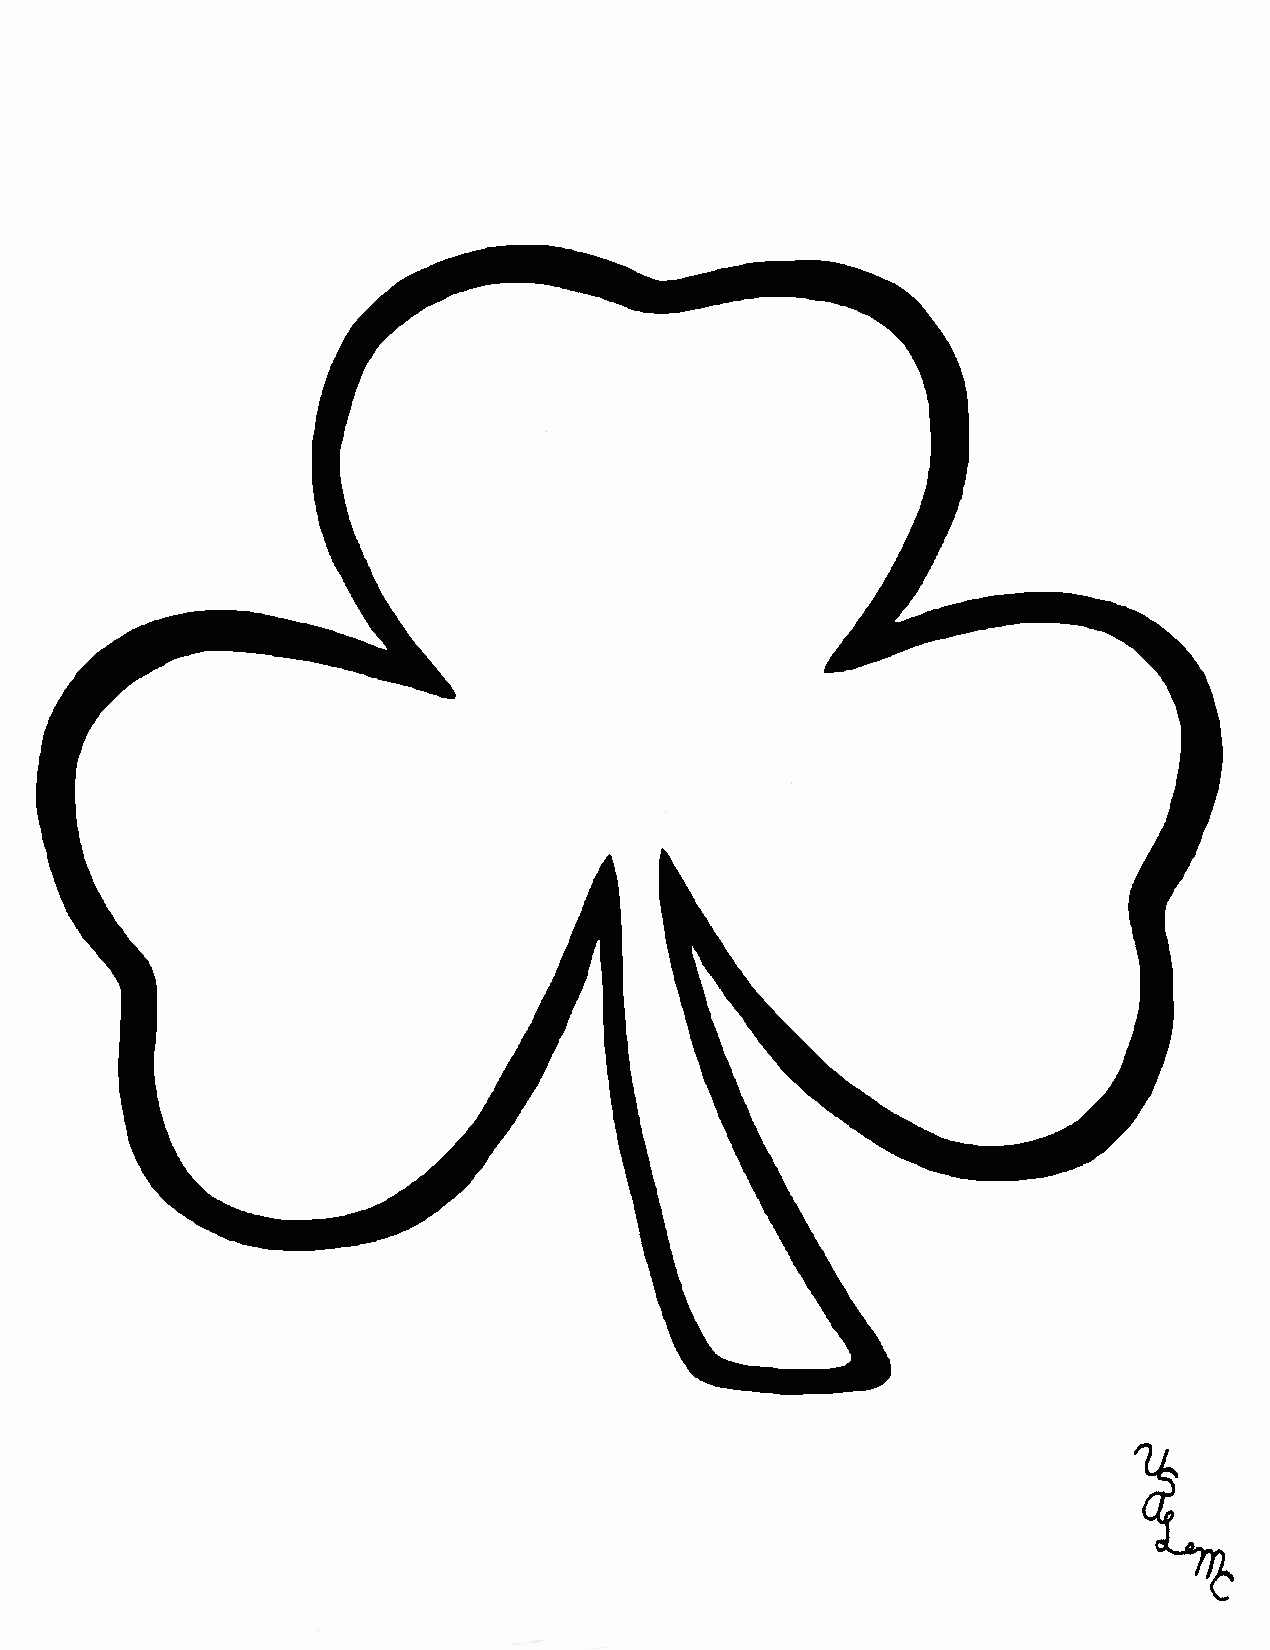 White shamrock clipart png freeuse download Shamrock Clipart Black And White – Free Clip Art Images for ... png freeuse download